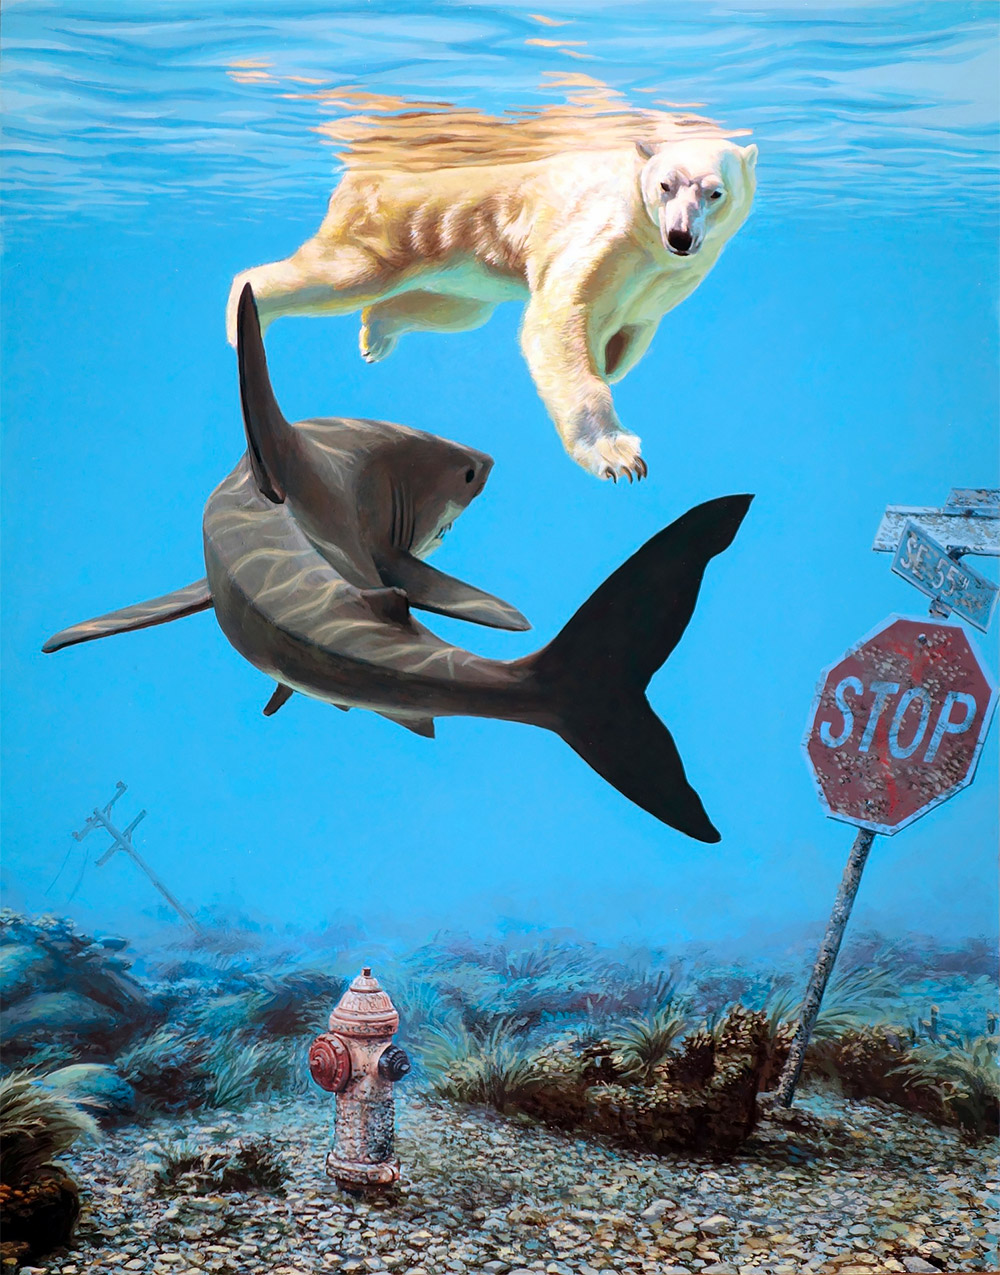 Thought-Provoking Paintings by Josh Keyes